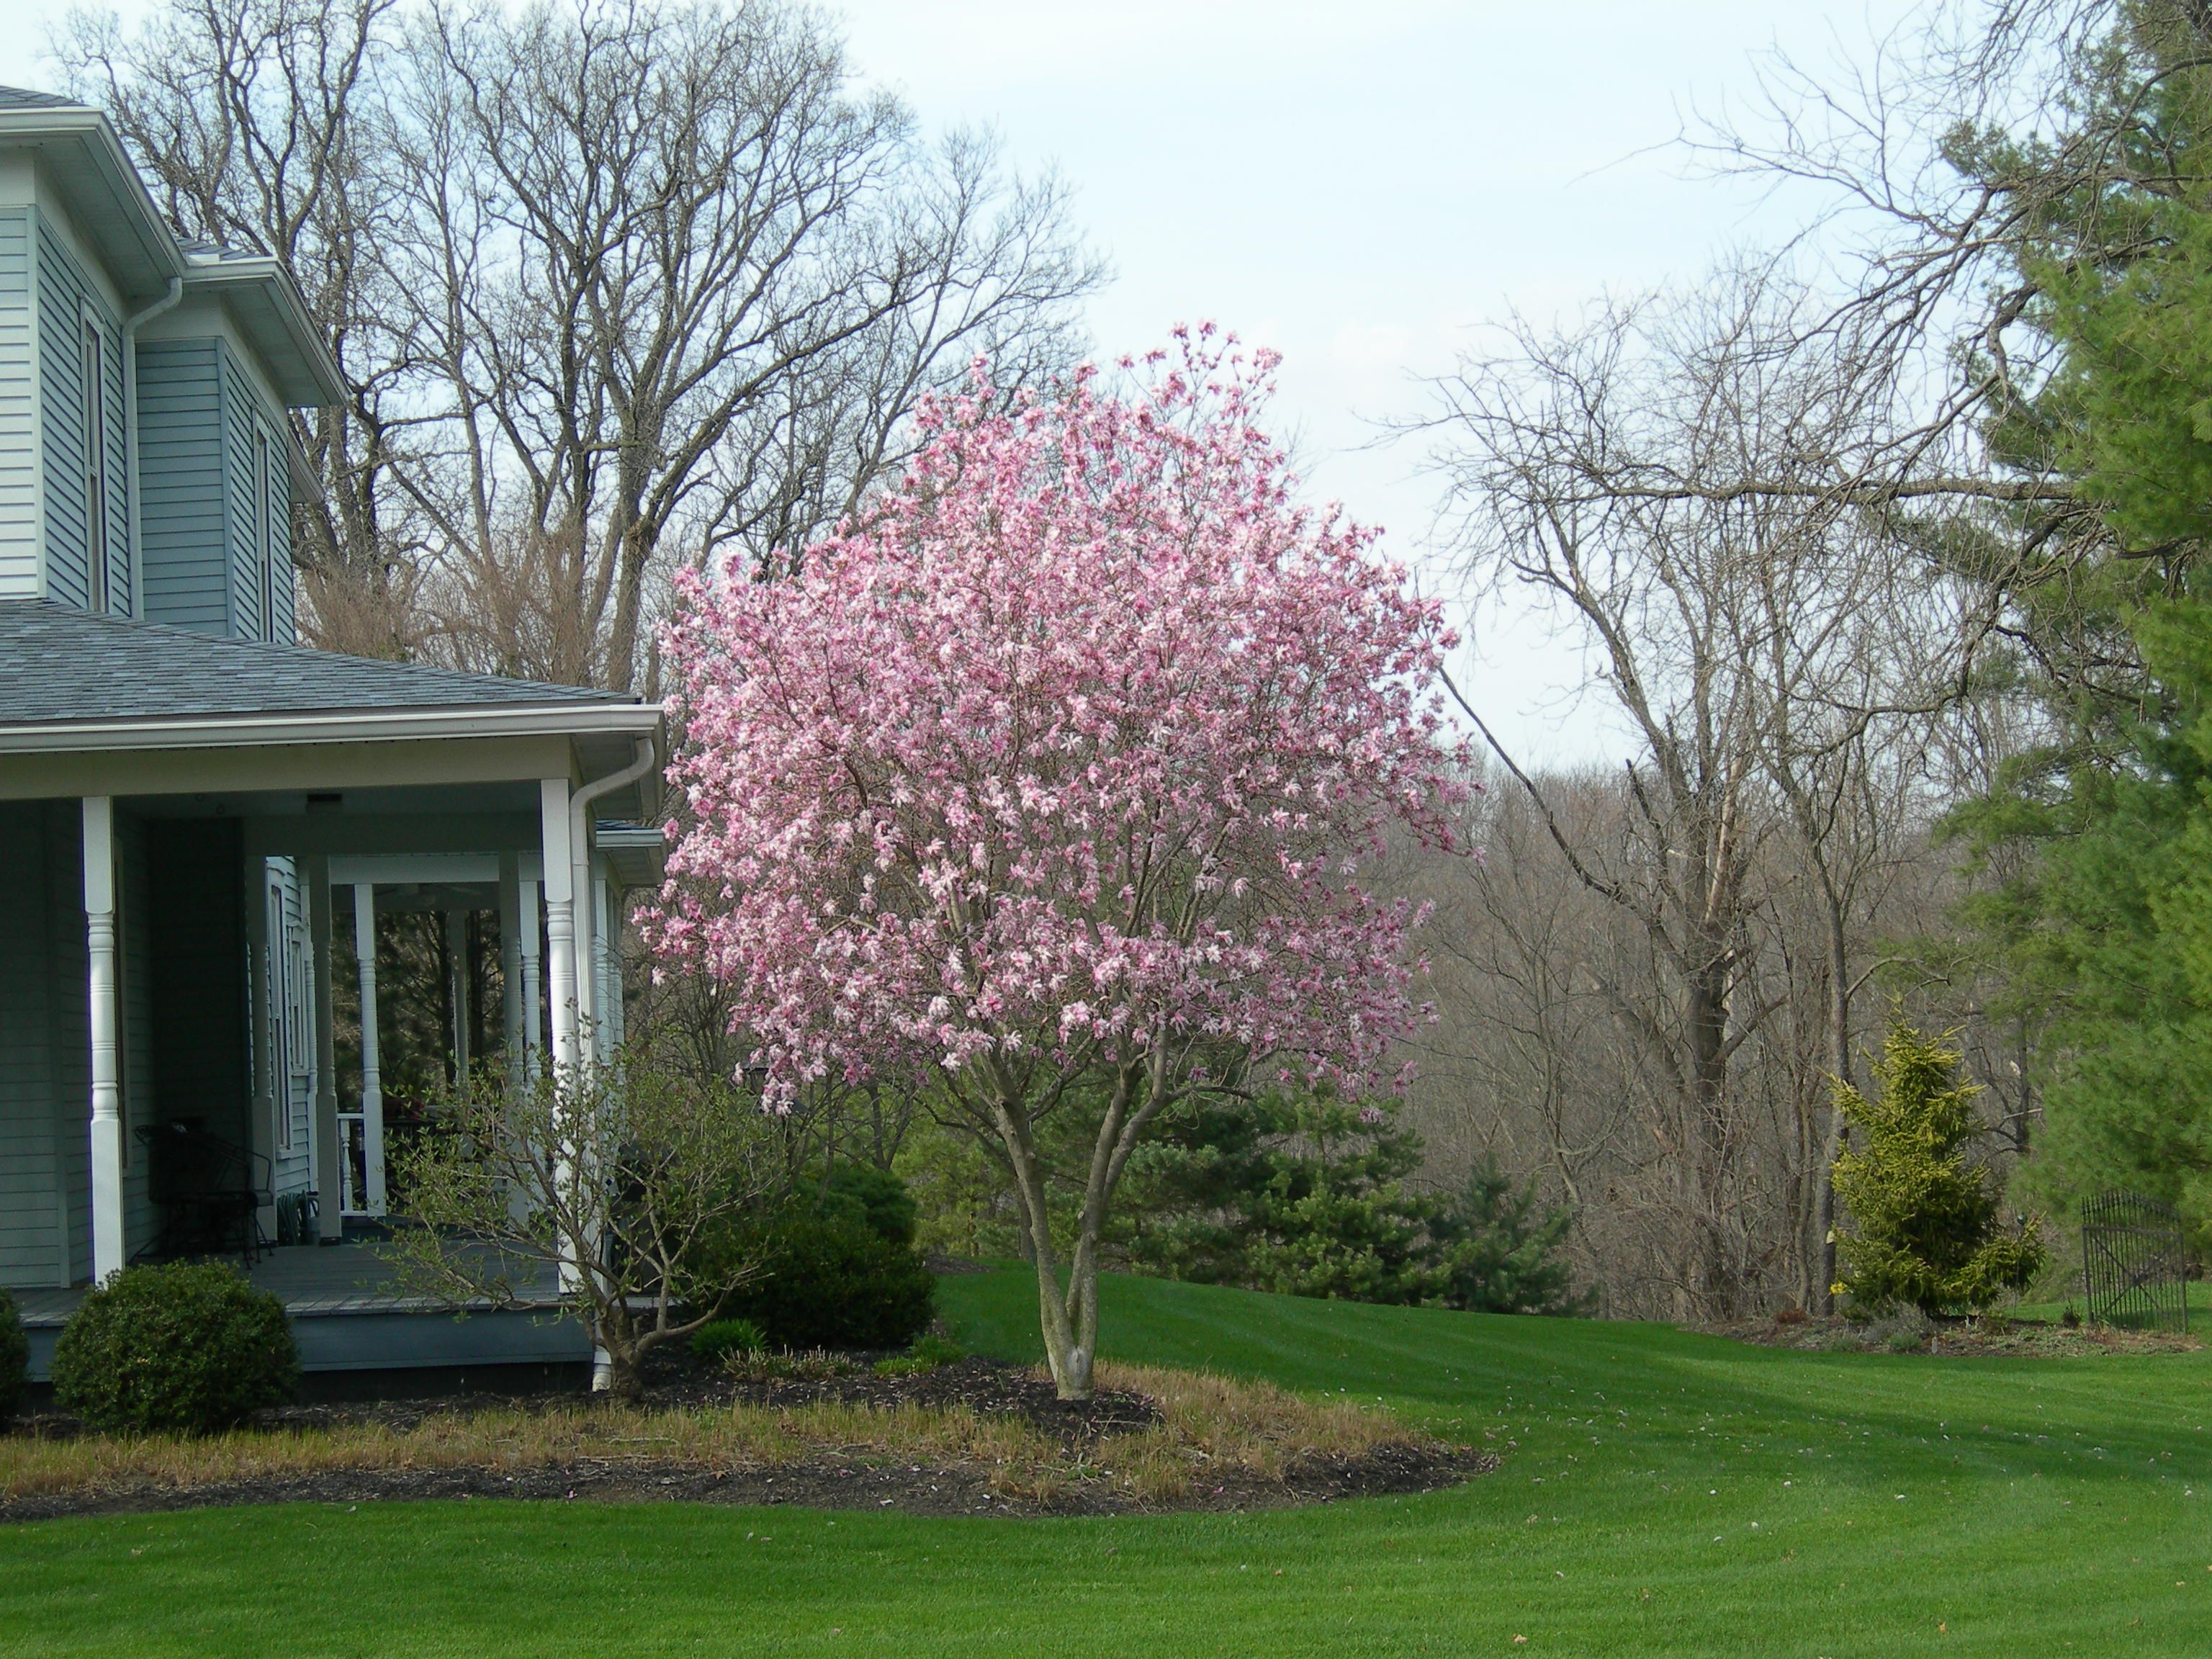 Ornamental Trees Magnolia Jane Powell Ohio Trees For Front Yard Ornamental Trees Front Yard Landscaping